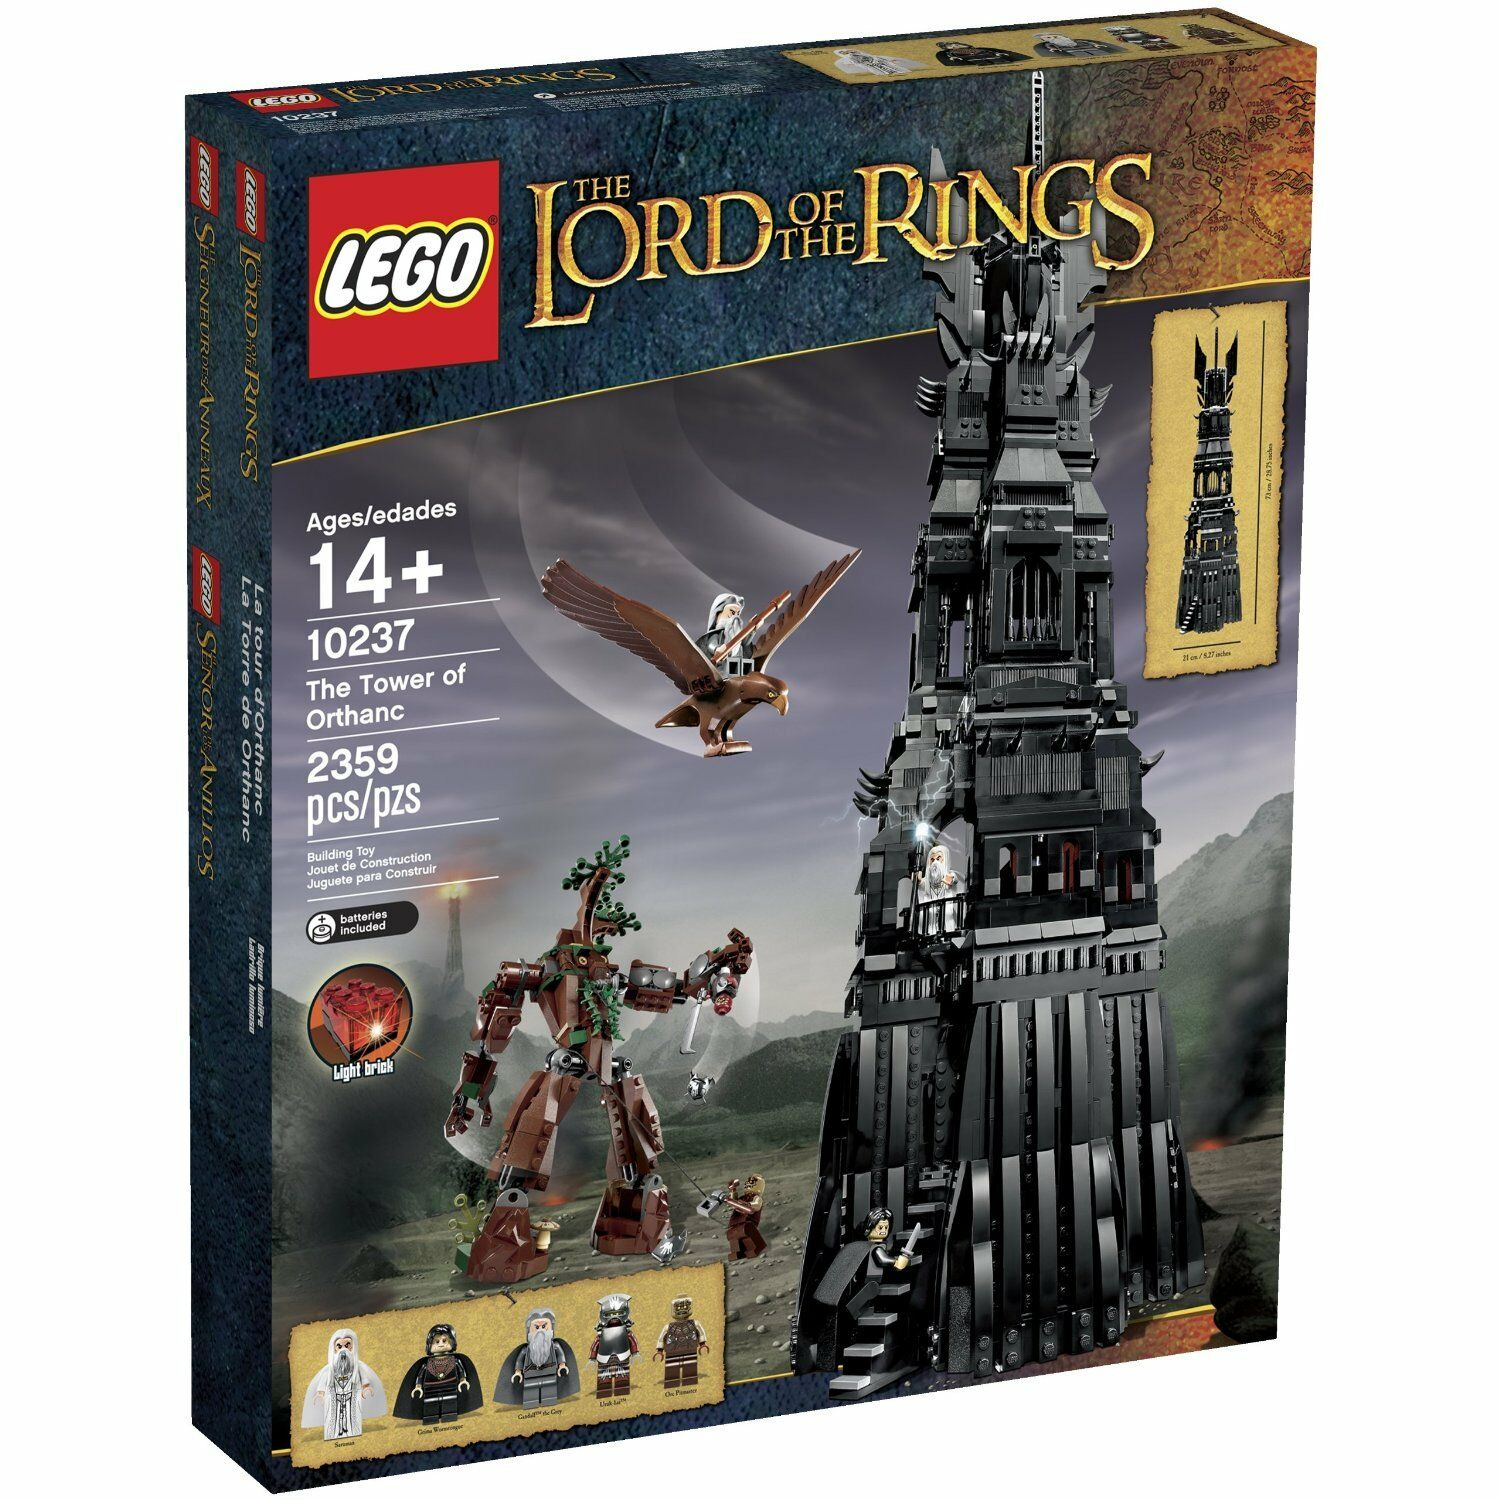 LEGO Lord of the Rings 10237 Tower of of of Orthanc Set Seal BNIB MISB Sold out 415ce3